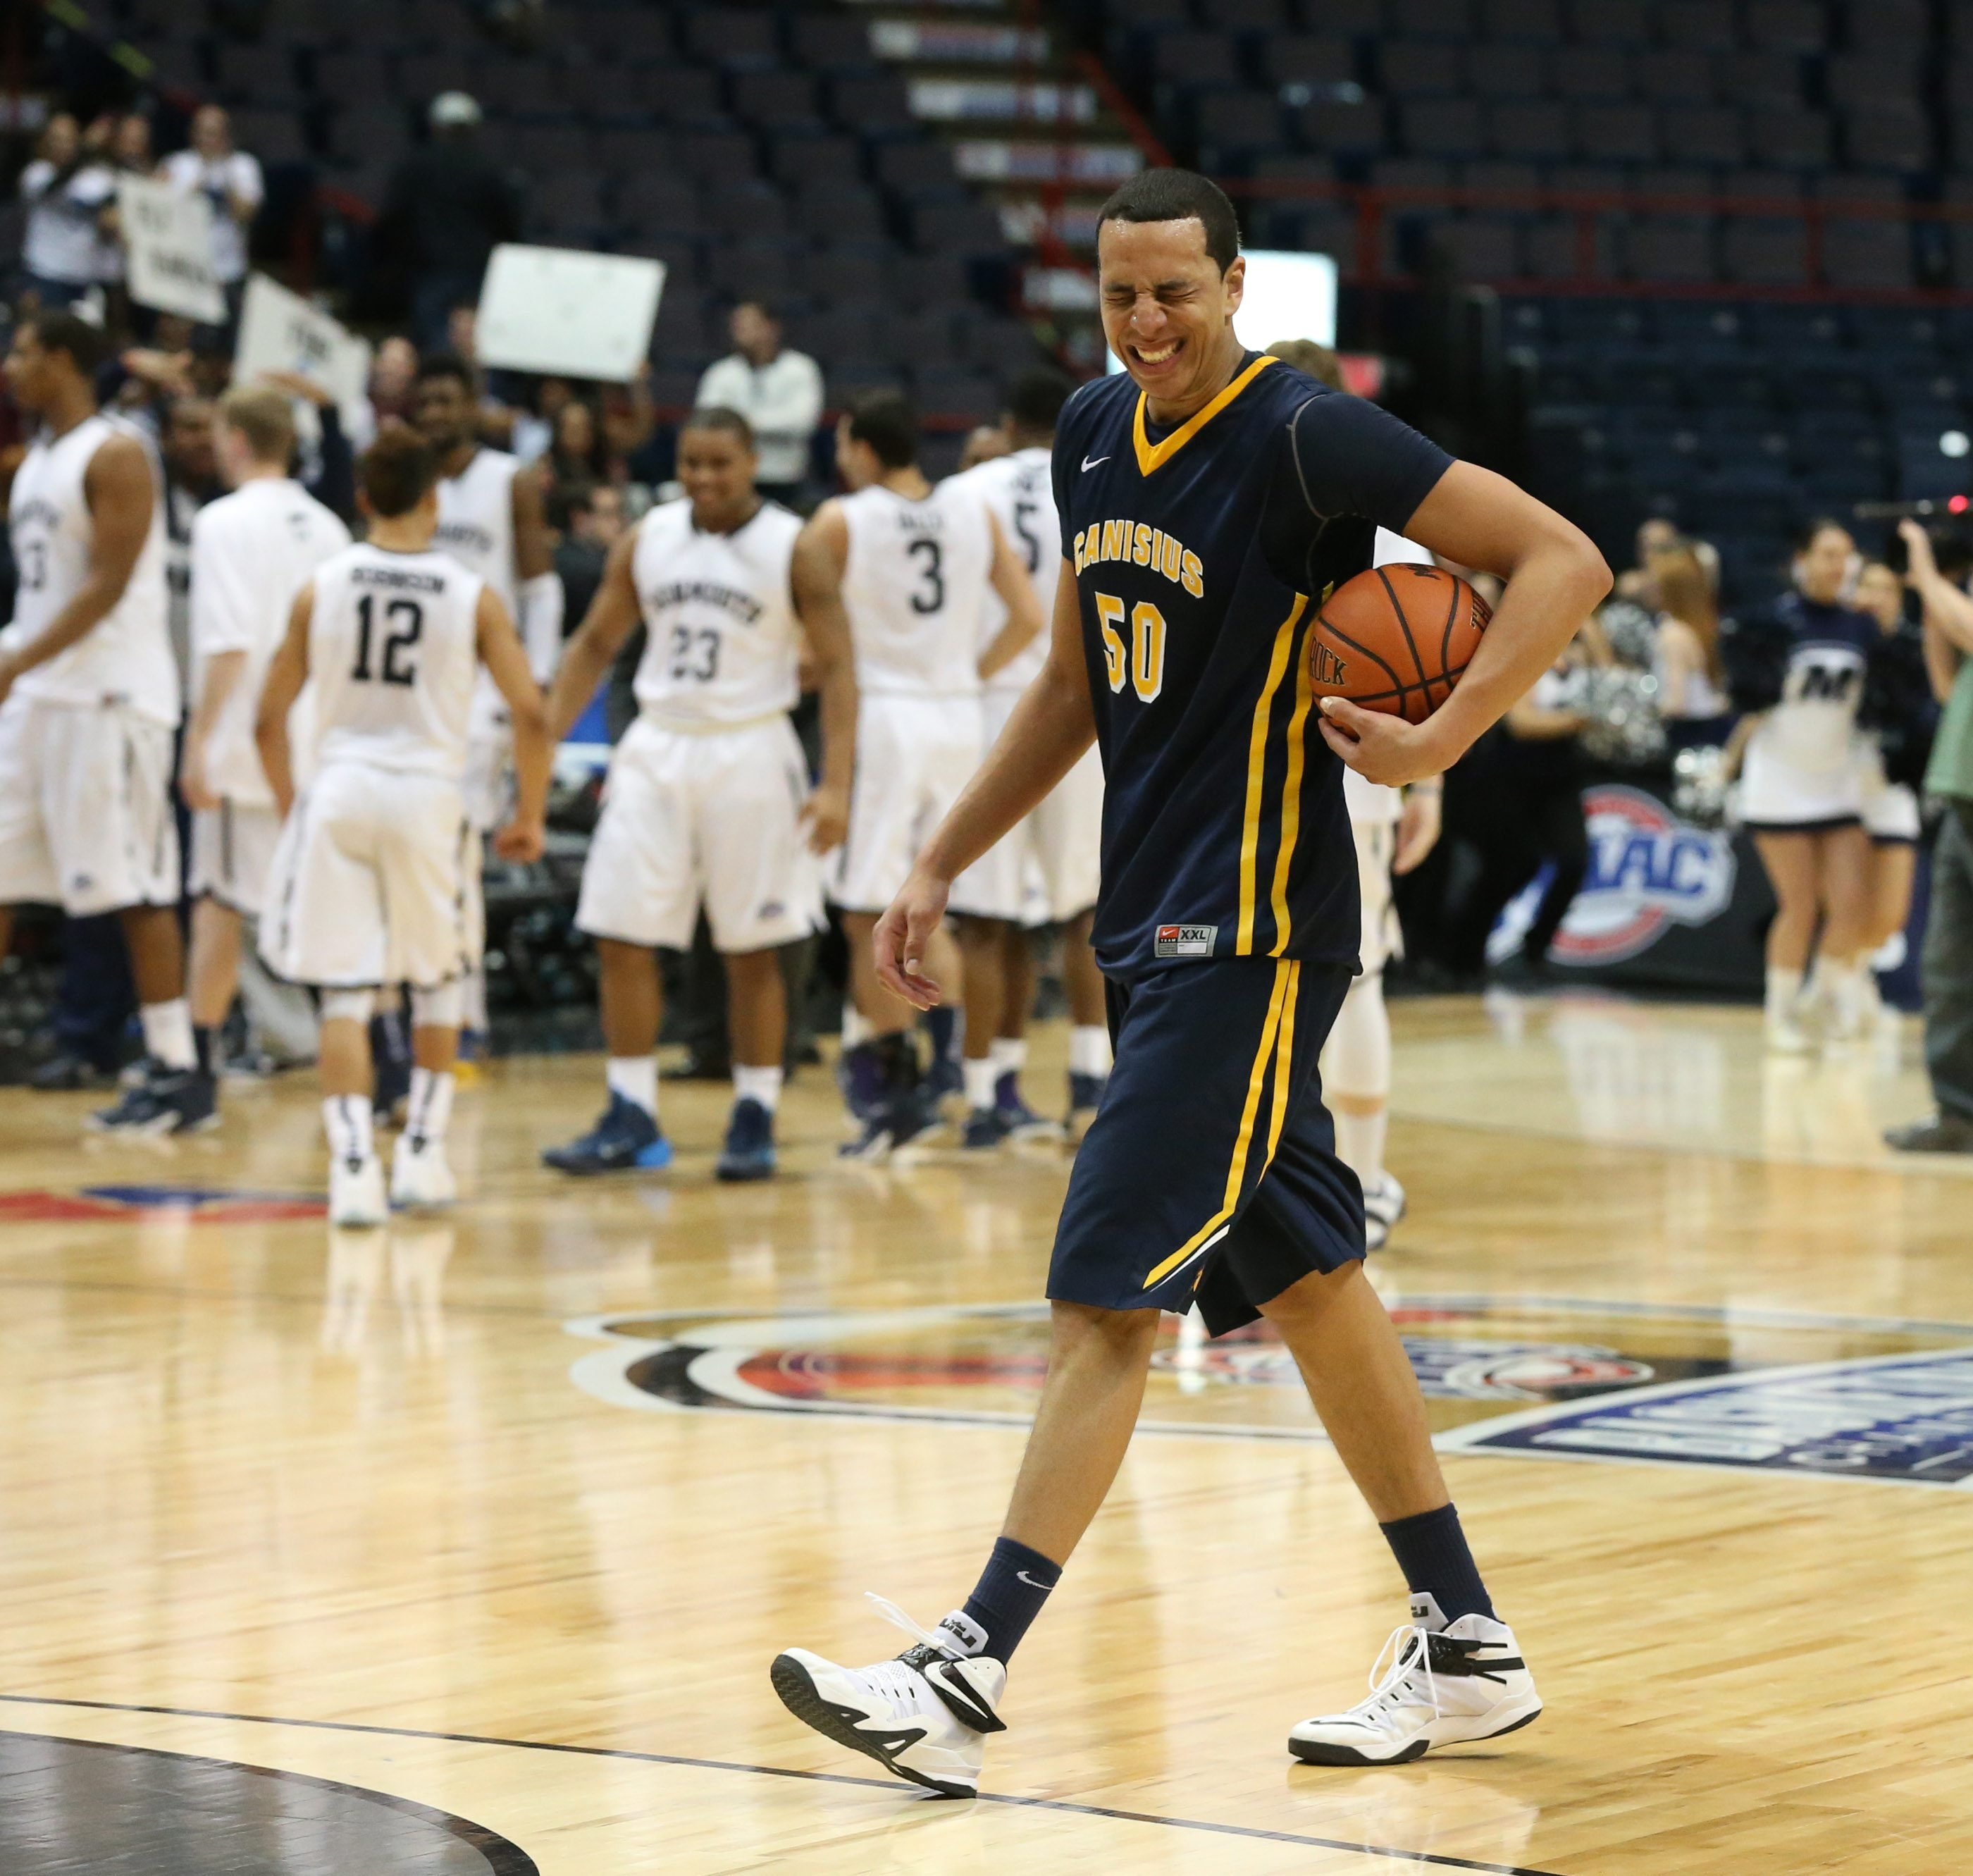 Canisius forward Josiah Heath walks off the court after his final game.